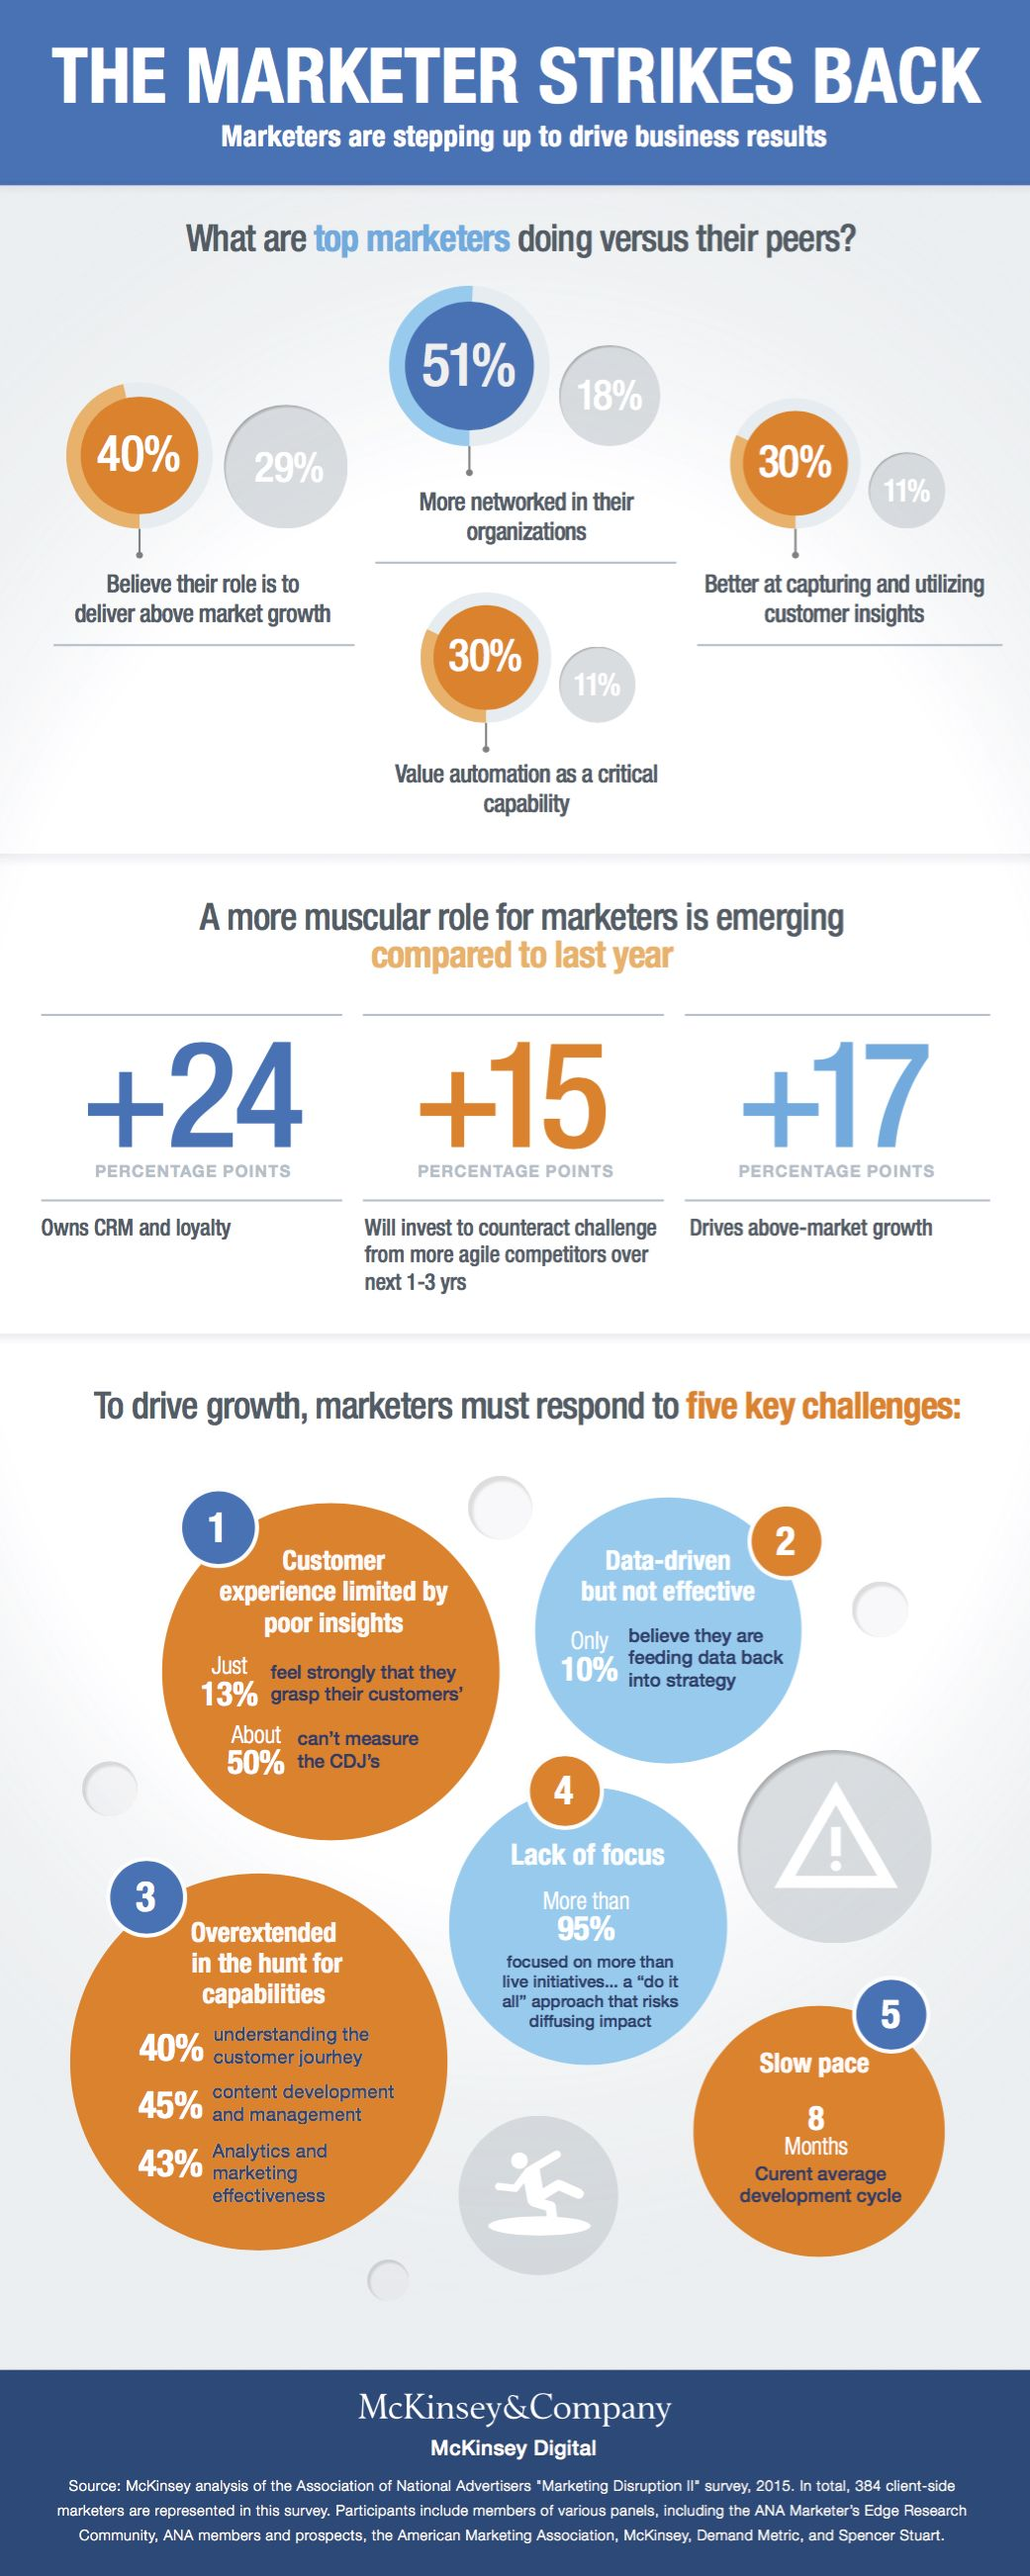 Marketers embrace a more muscular role, says ANA/McKinsey study